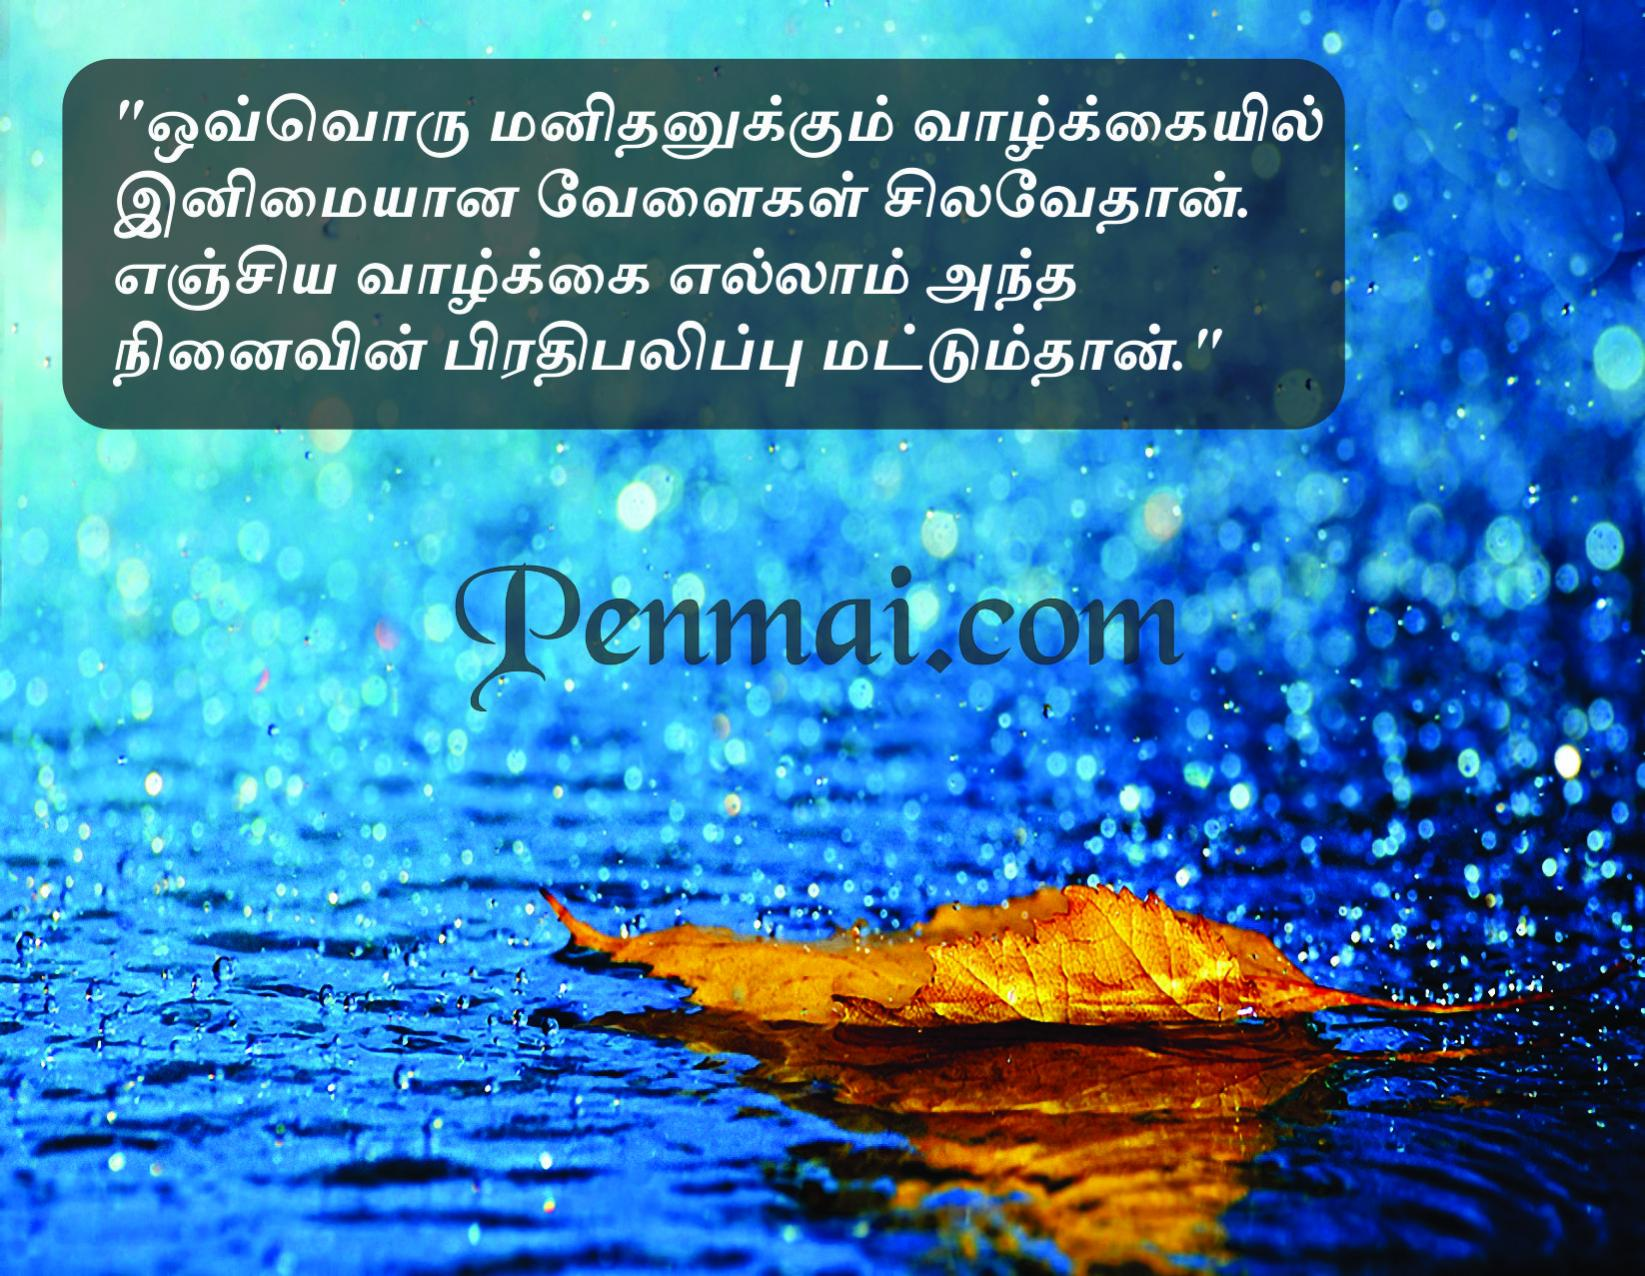 Tamil Wallpapers With Motivational Quotes Quotesgram. Happy Quotes On Instagram. Birthday Quotes Drake. Pure Country Quotes Earl. Thank You Jesus Quotes With Pictures. Love Quotes Xmas Cards. Dr Seuss Quotes Classroom. Girl Drummer Quotes. Crush Birthday Quotes